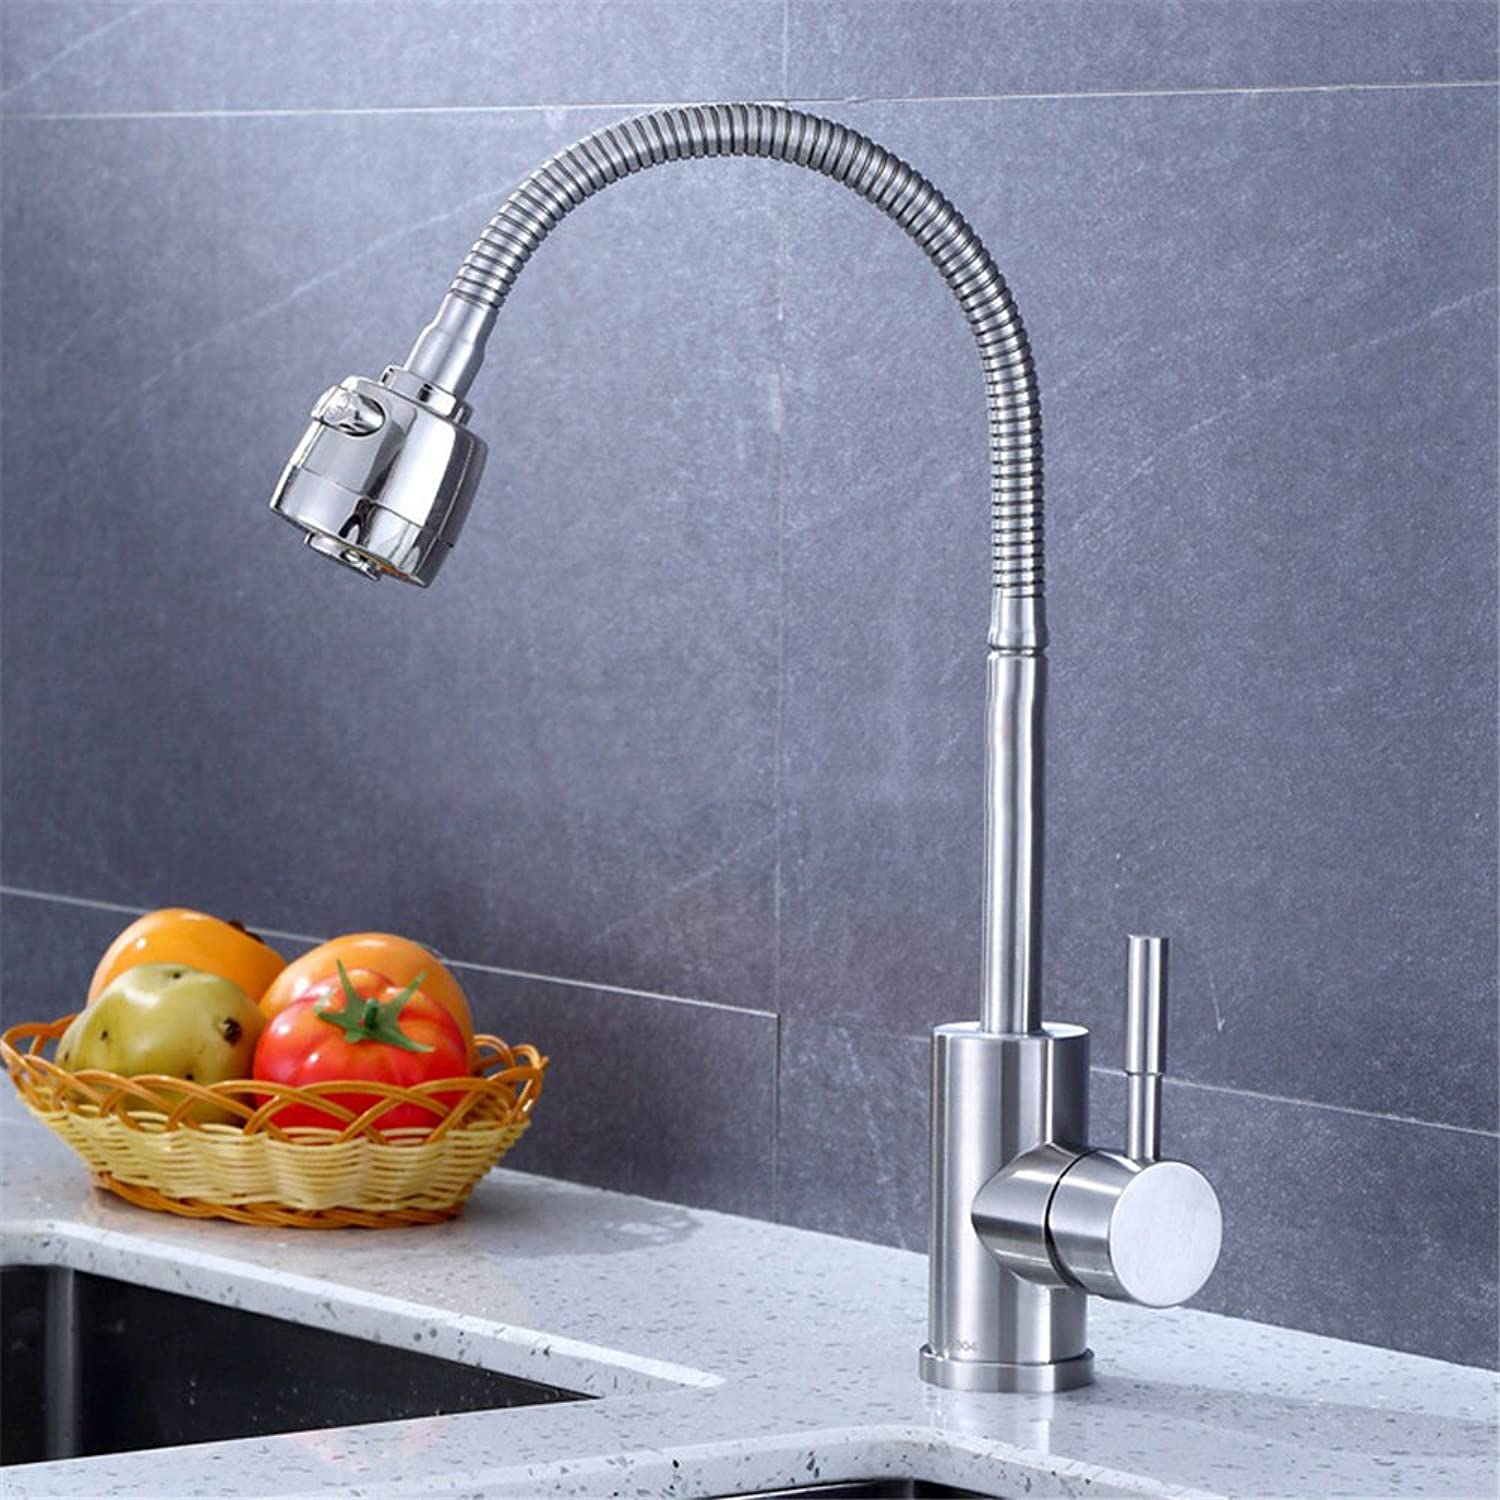 T-TSLT New Kitchen Sink Faucet with redating Curved Sink Faucet